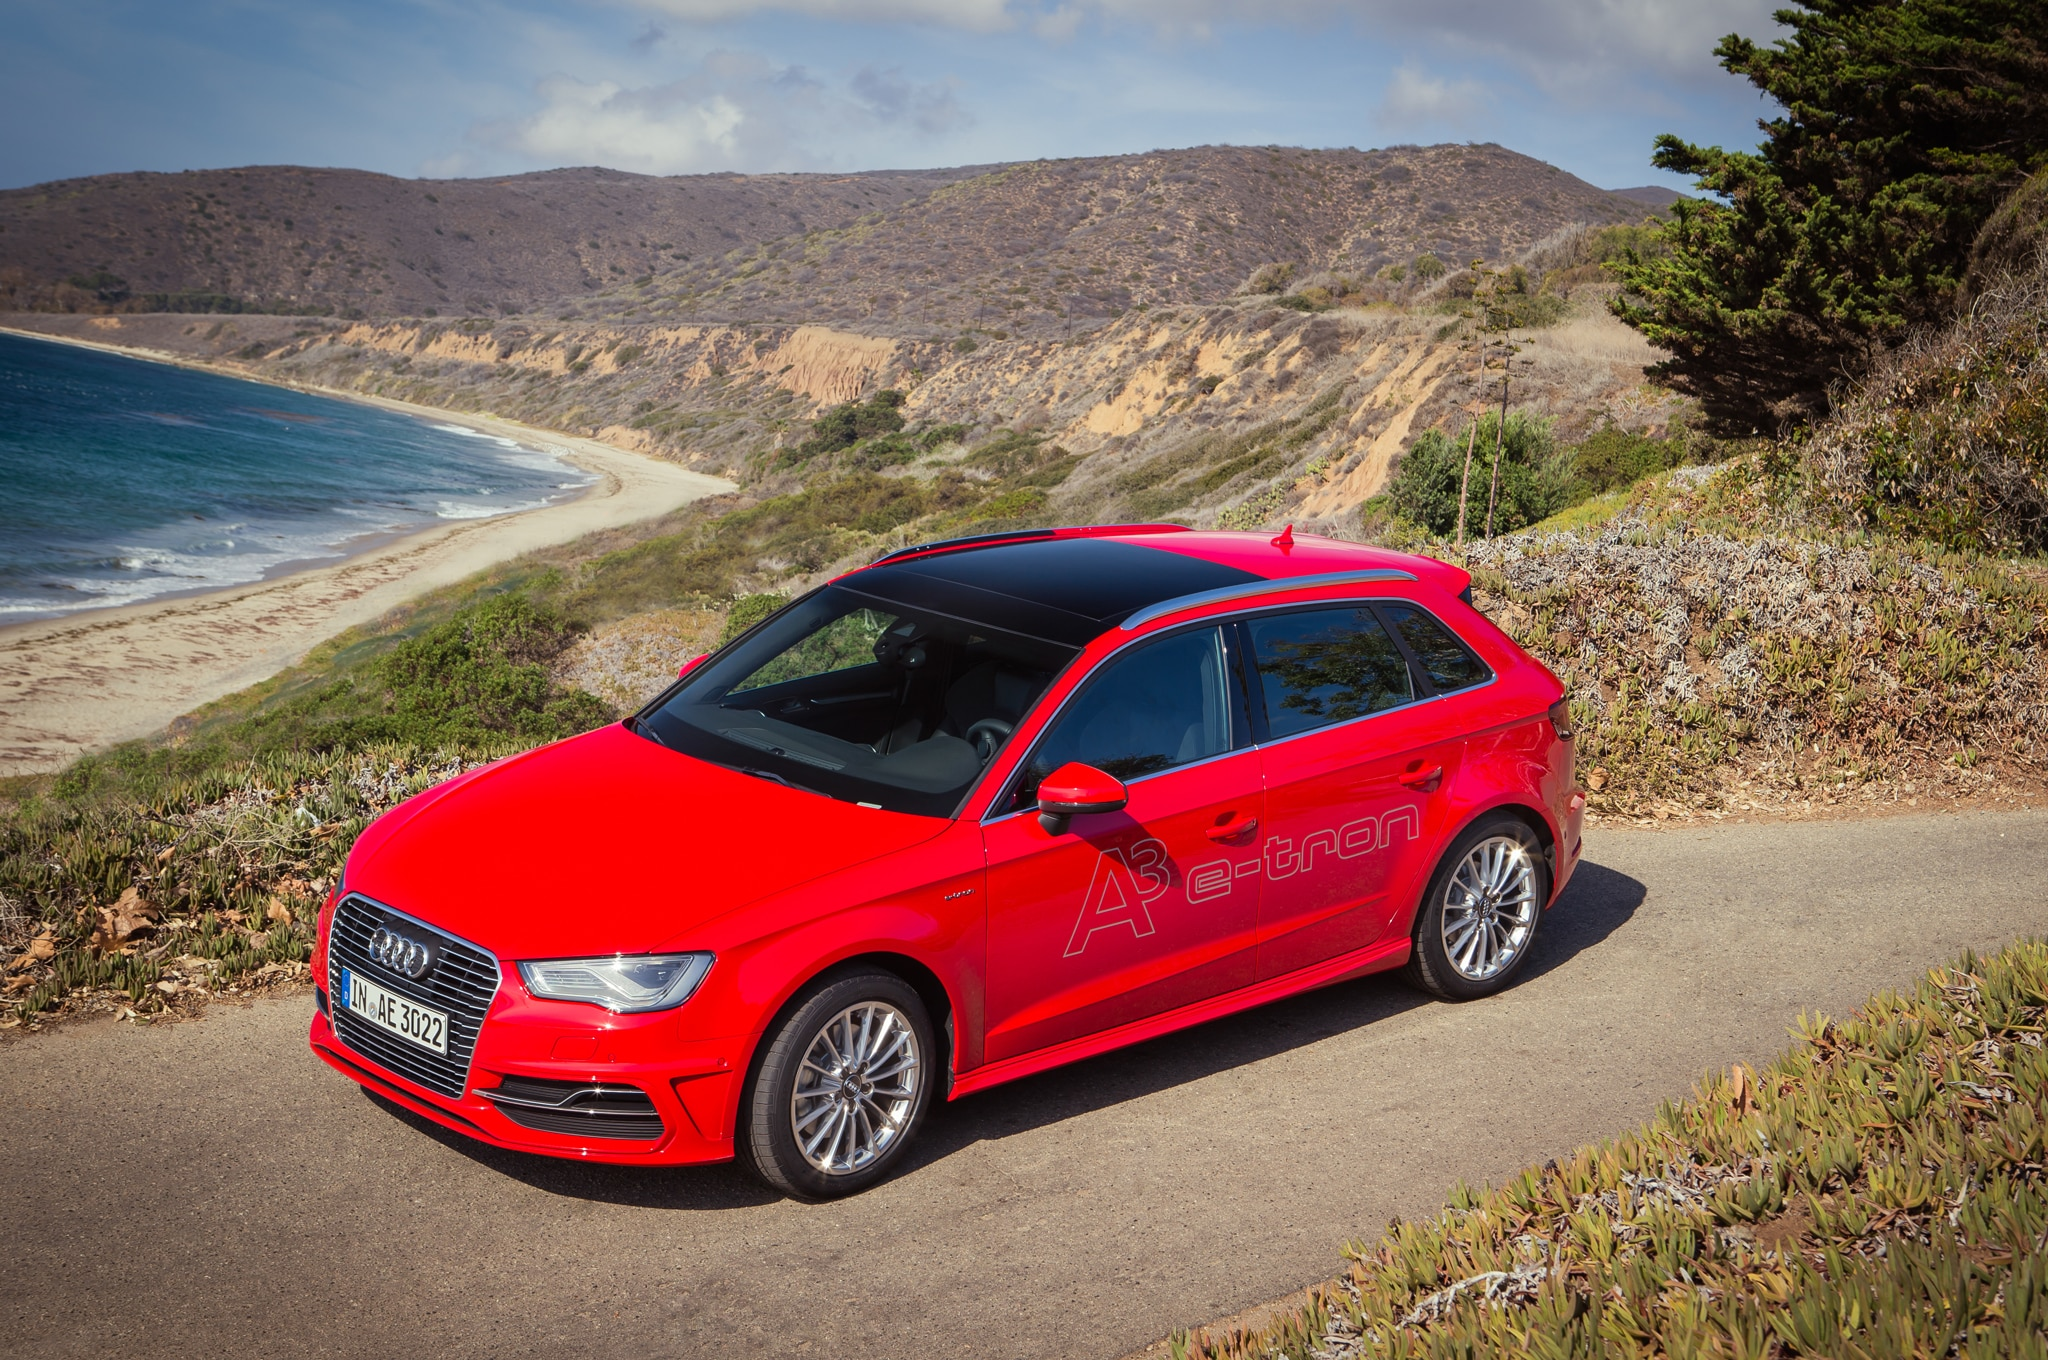 hands on with the 2015 audi a3 sportback e tron phev automobile magazine. Black Bedroom Furniture Sets. Home Design Ideas